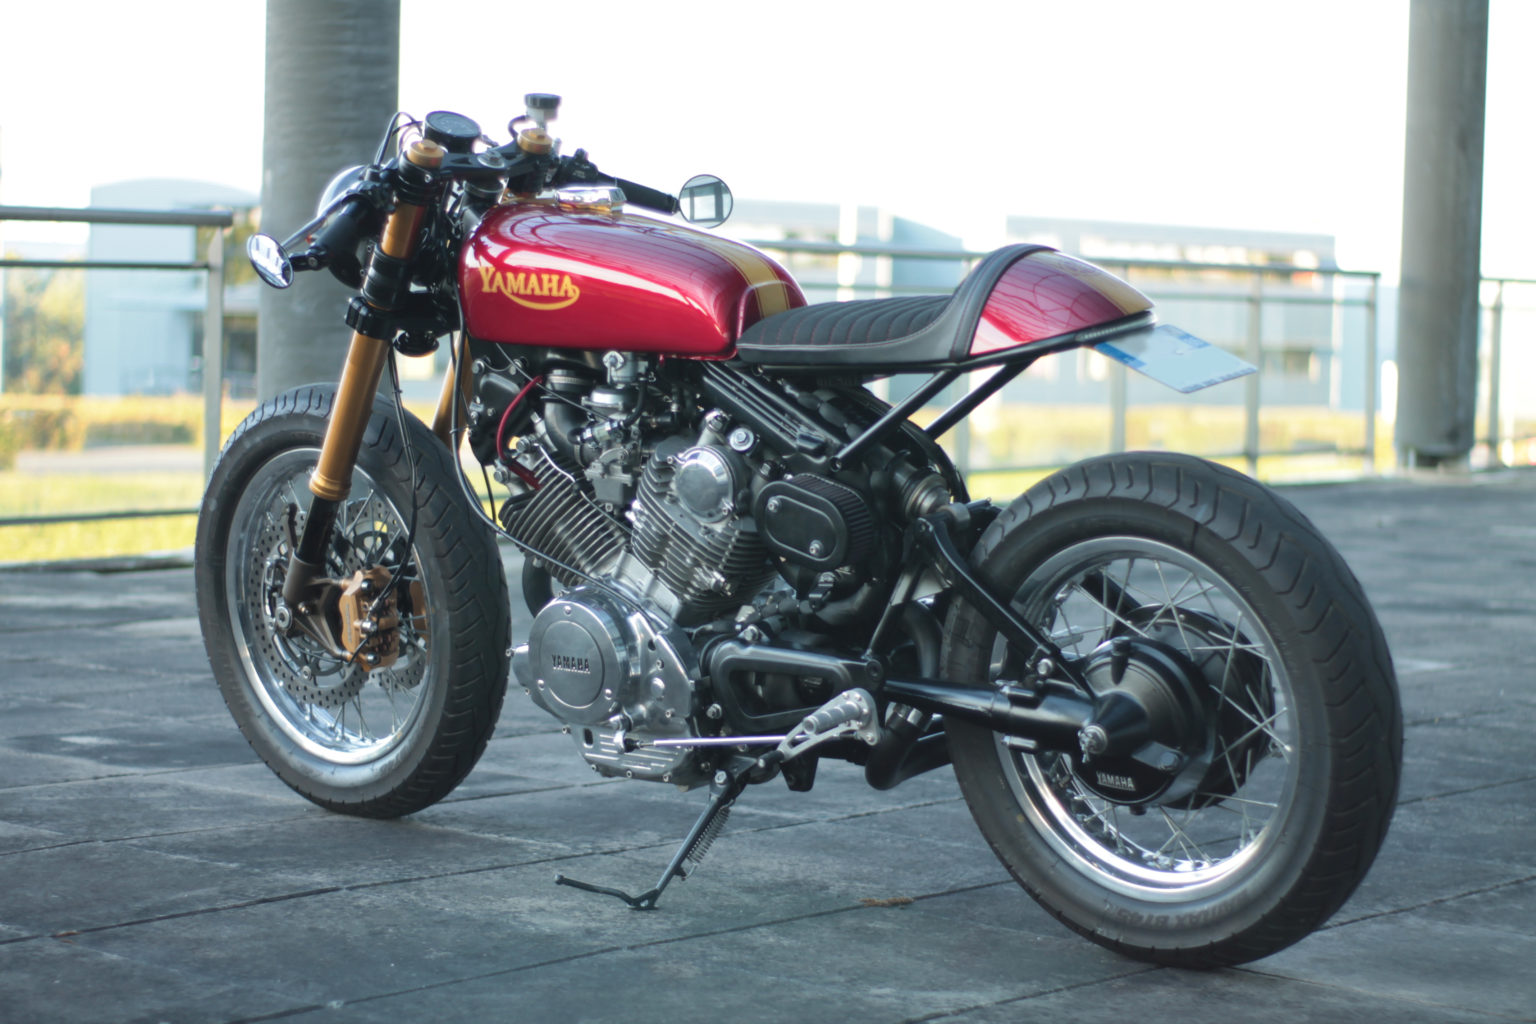 Yamaha Virago 750 by Jean-Pierre from Poitiers